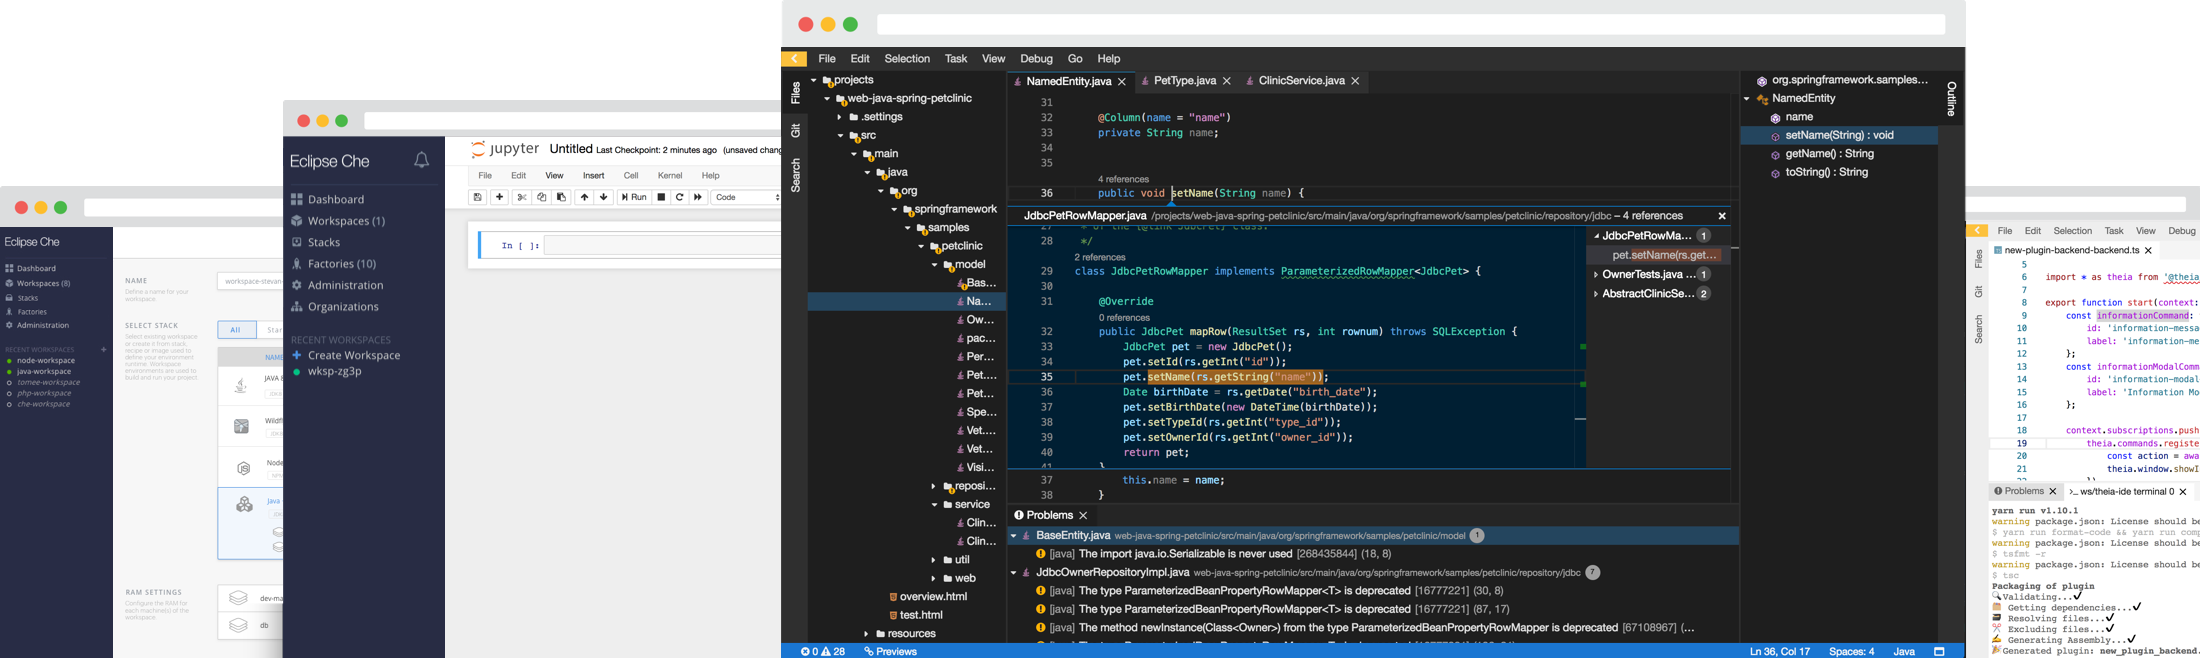 Eclipse Che | Next-Generation Eclipse IDE, Cloud IDE, and